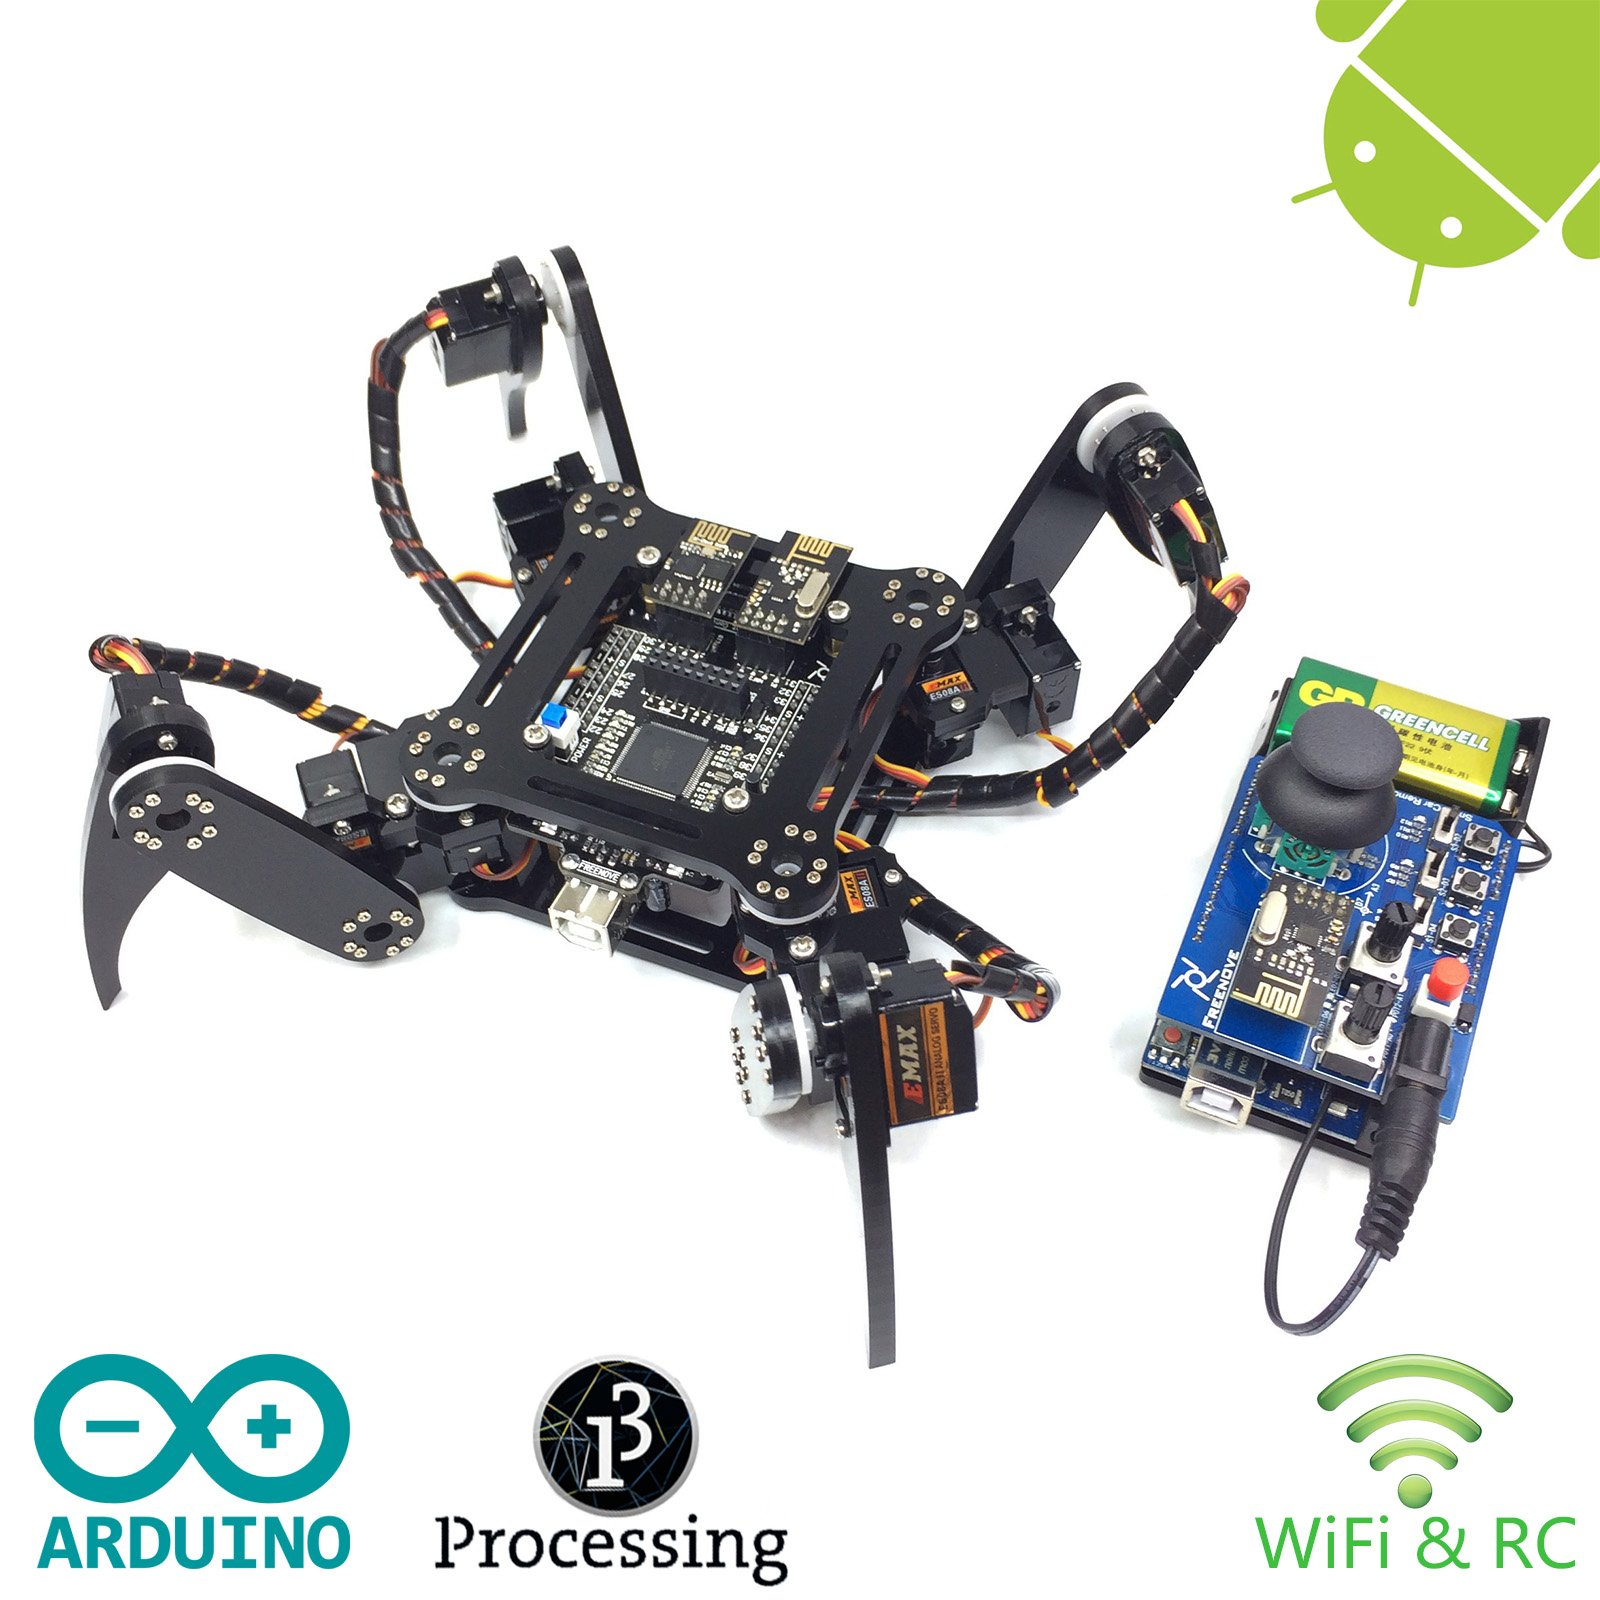 Freenove Quadruped Robot Kit with Remote Control | Arduino Robot Project | Spider Walking Crawling 4 Legged | Detailed Tutorial | Android APP | RC WiFi Wireless 2.4G Servo by Freenove